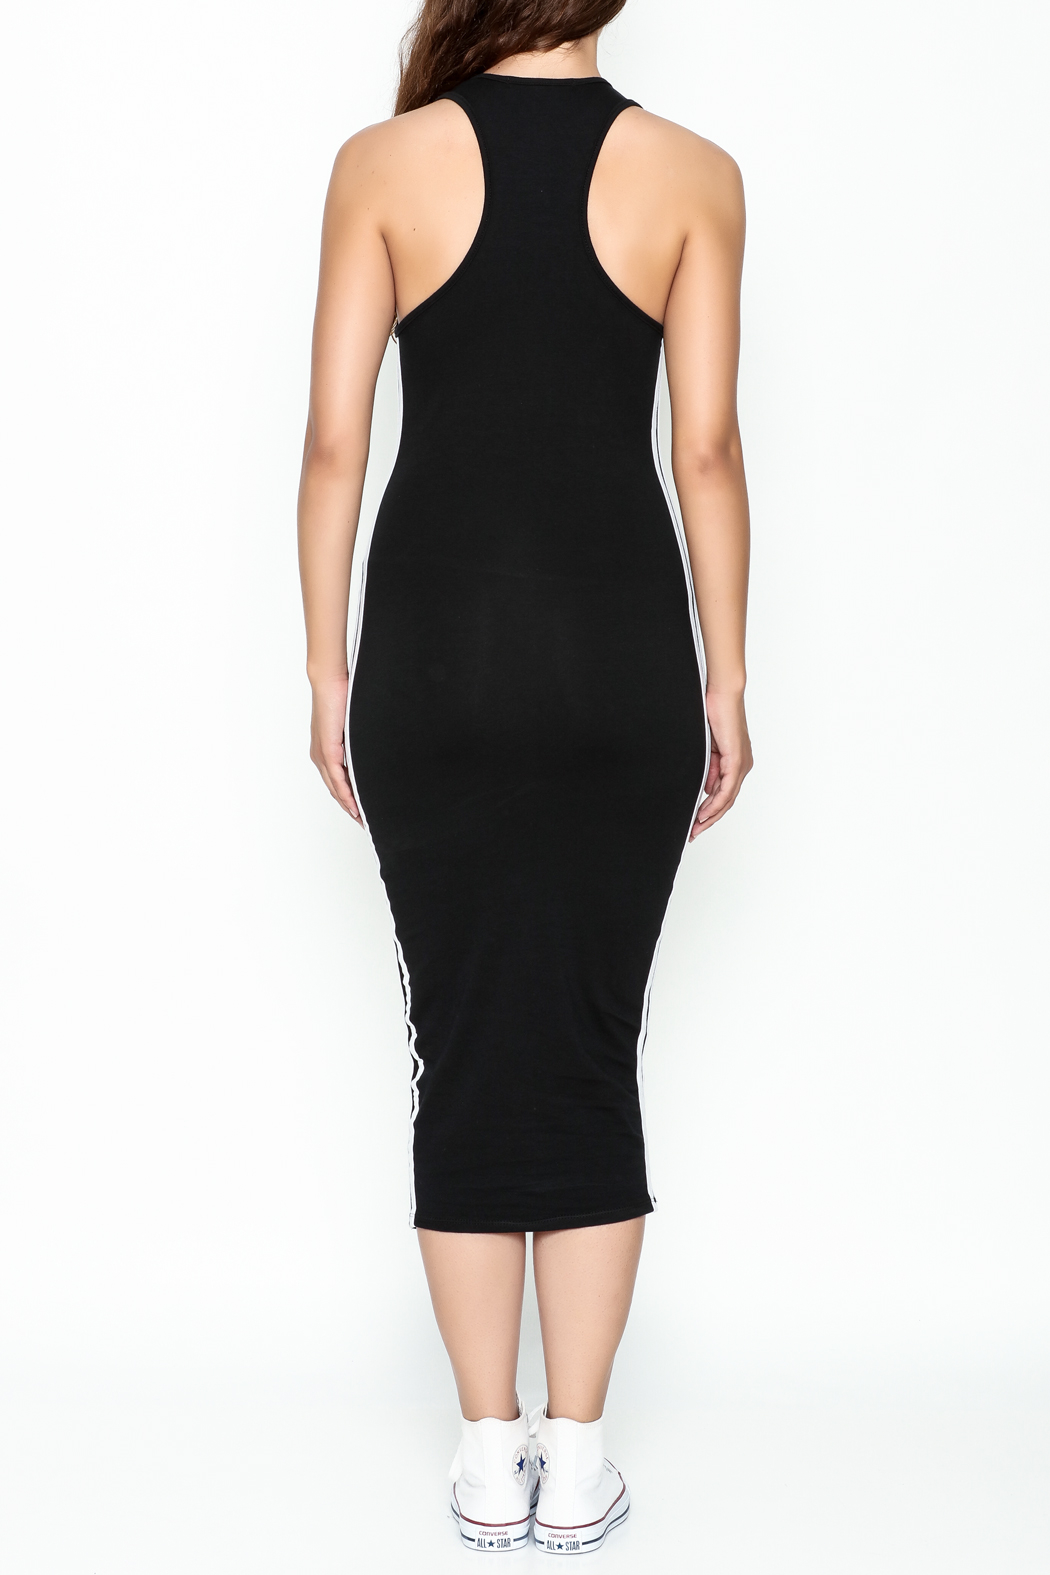 Rebdolls Back Racerback Midi Dress - Back Cropped Image